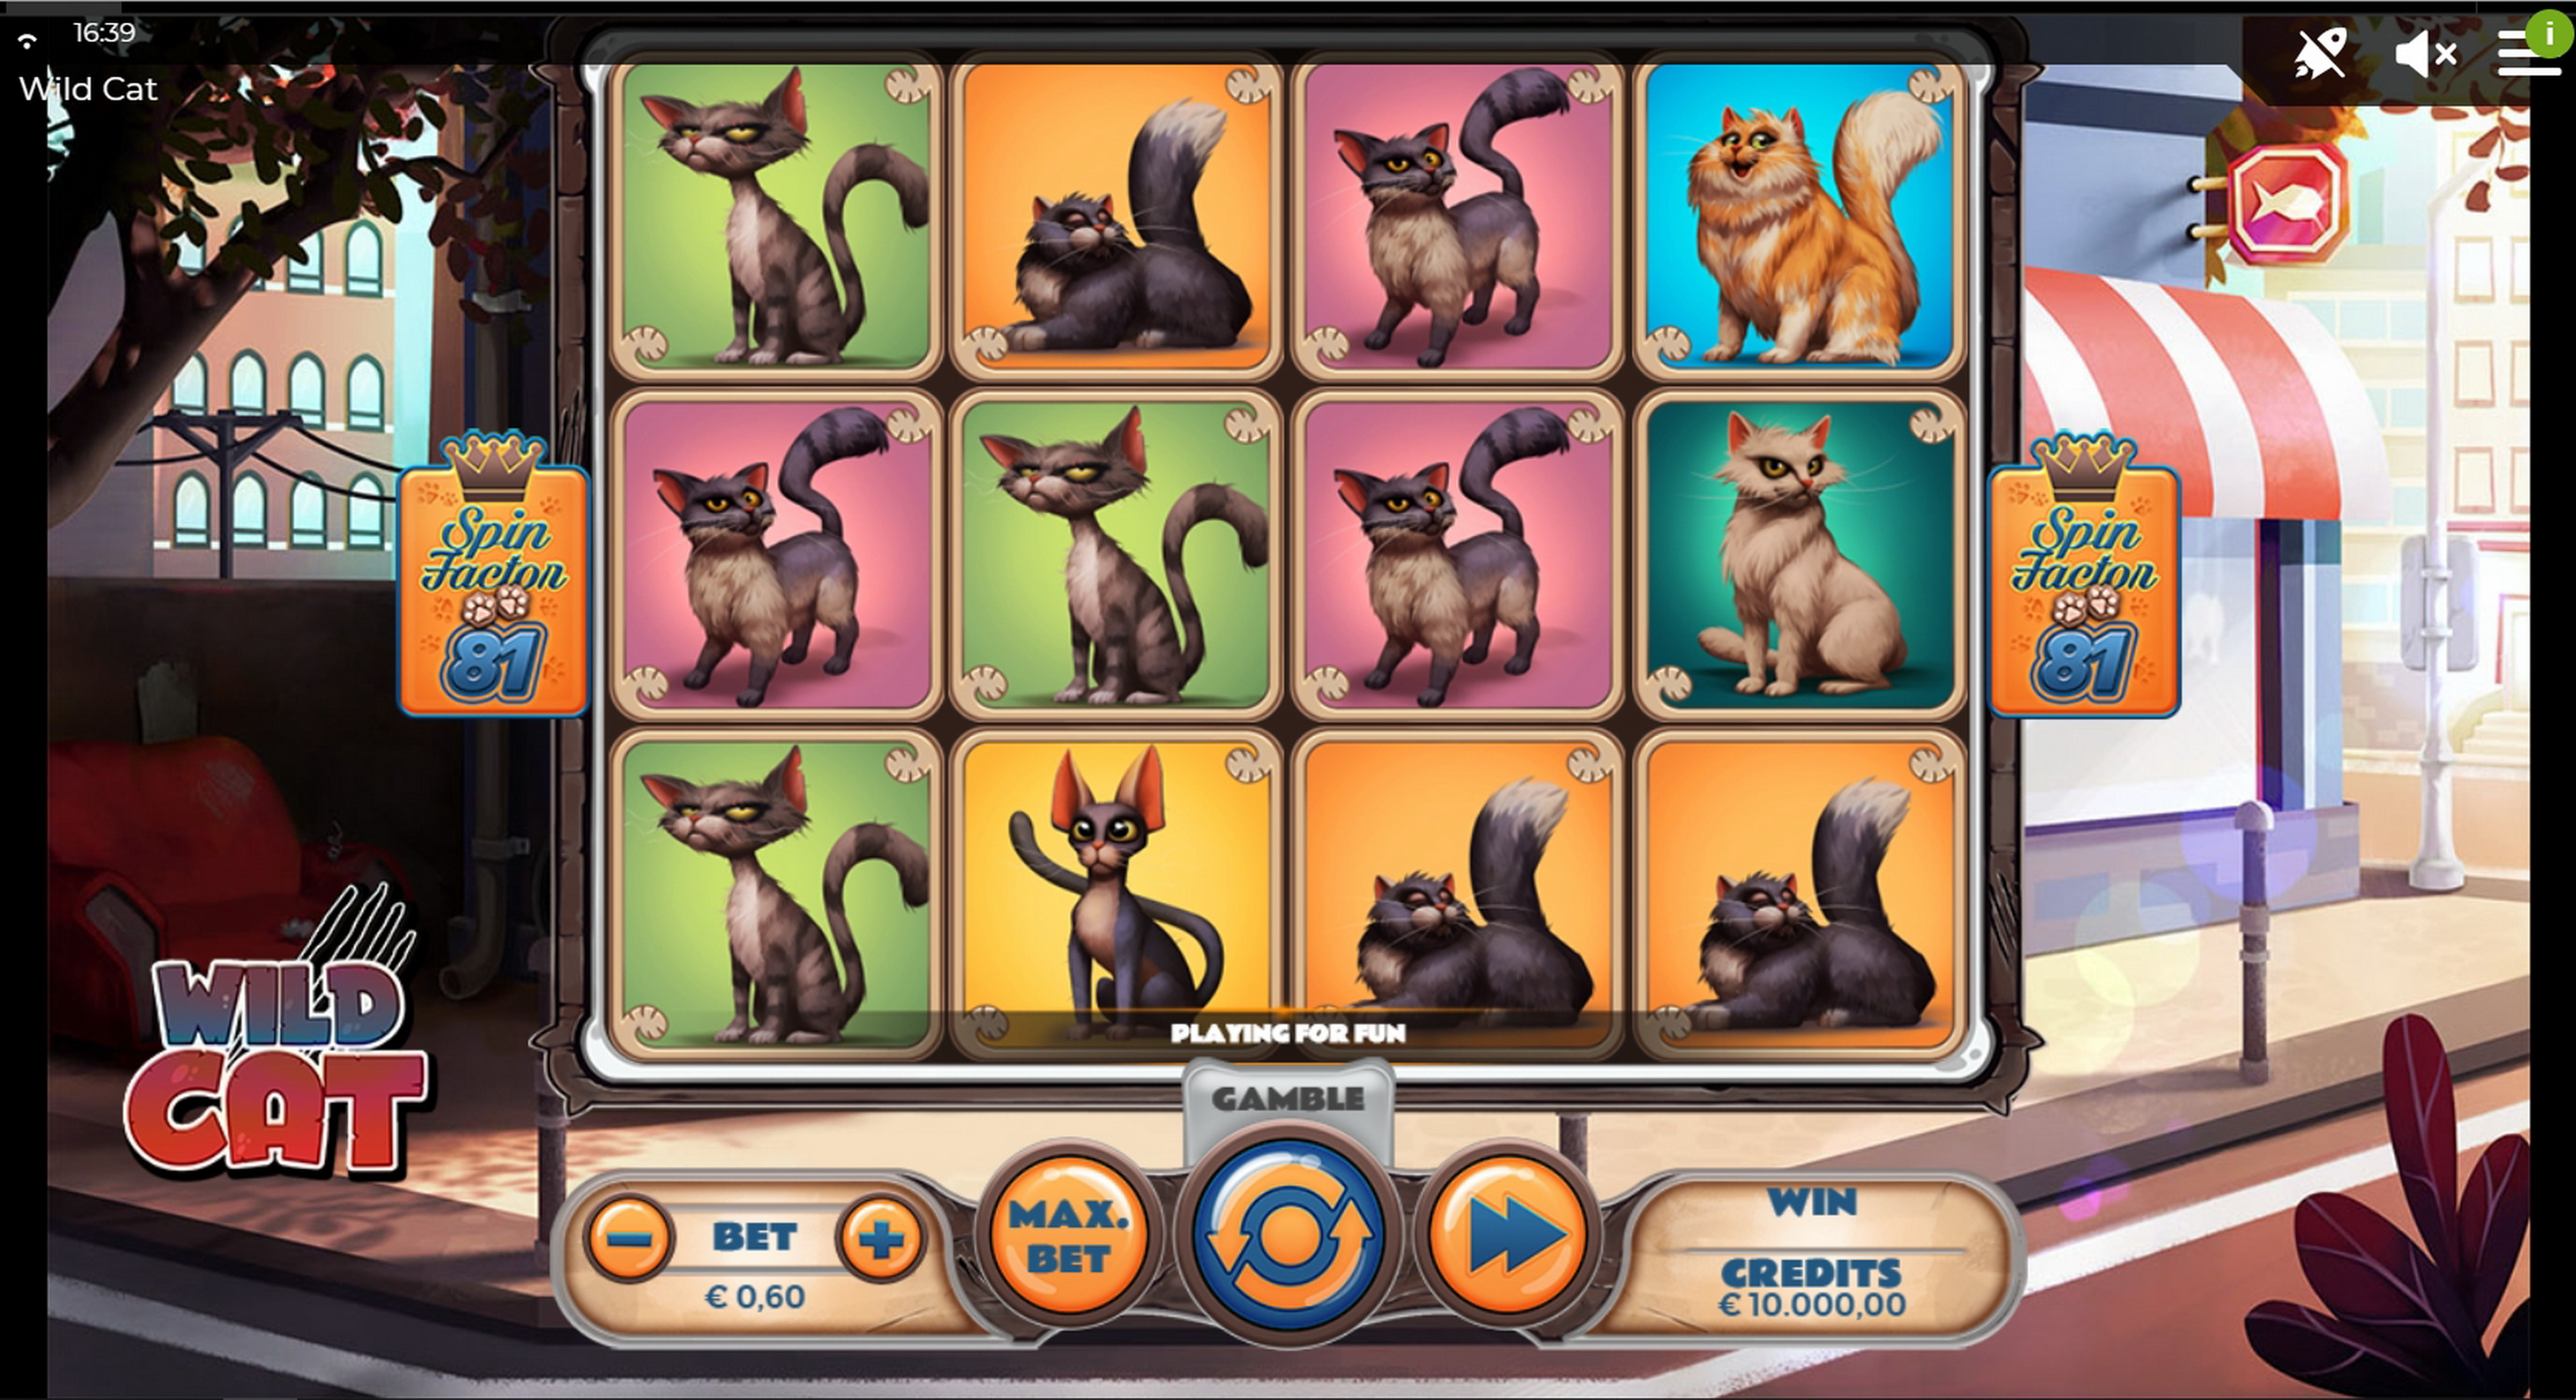 Reels in Wild Cat Slot Game by Spinmatic